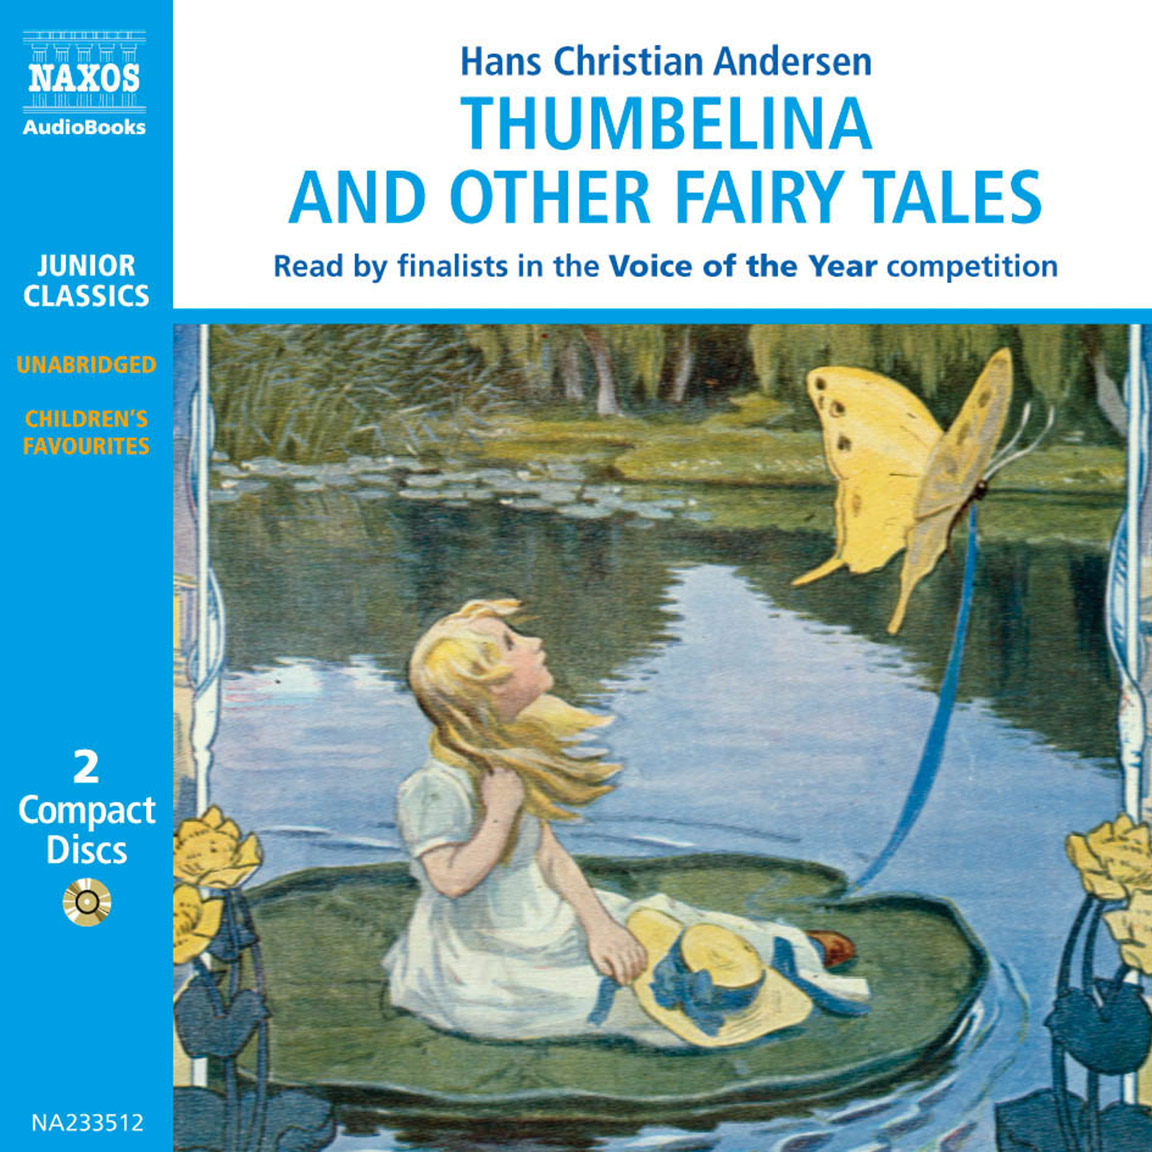 Thumbelina and other Fairy Tales (selections)